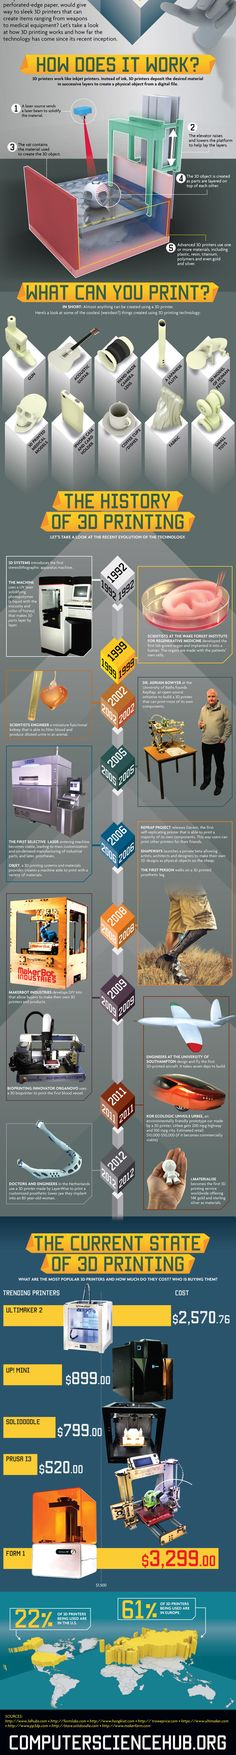 3d Printing in Medicine: The Future is Now (Infographic)